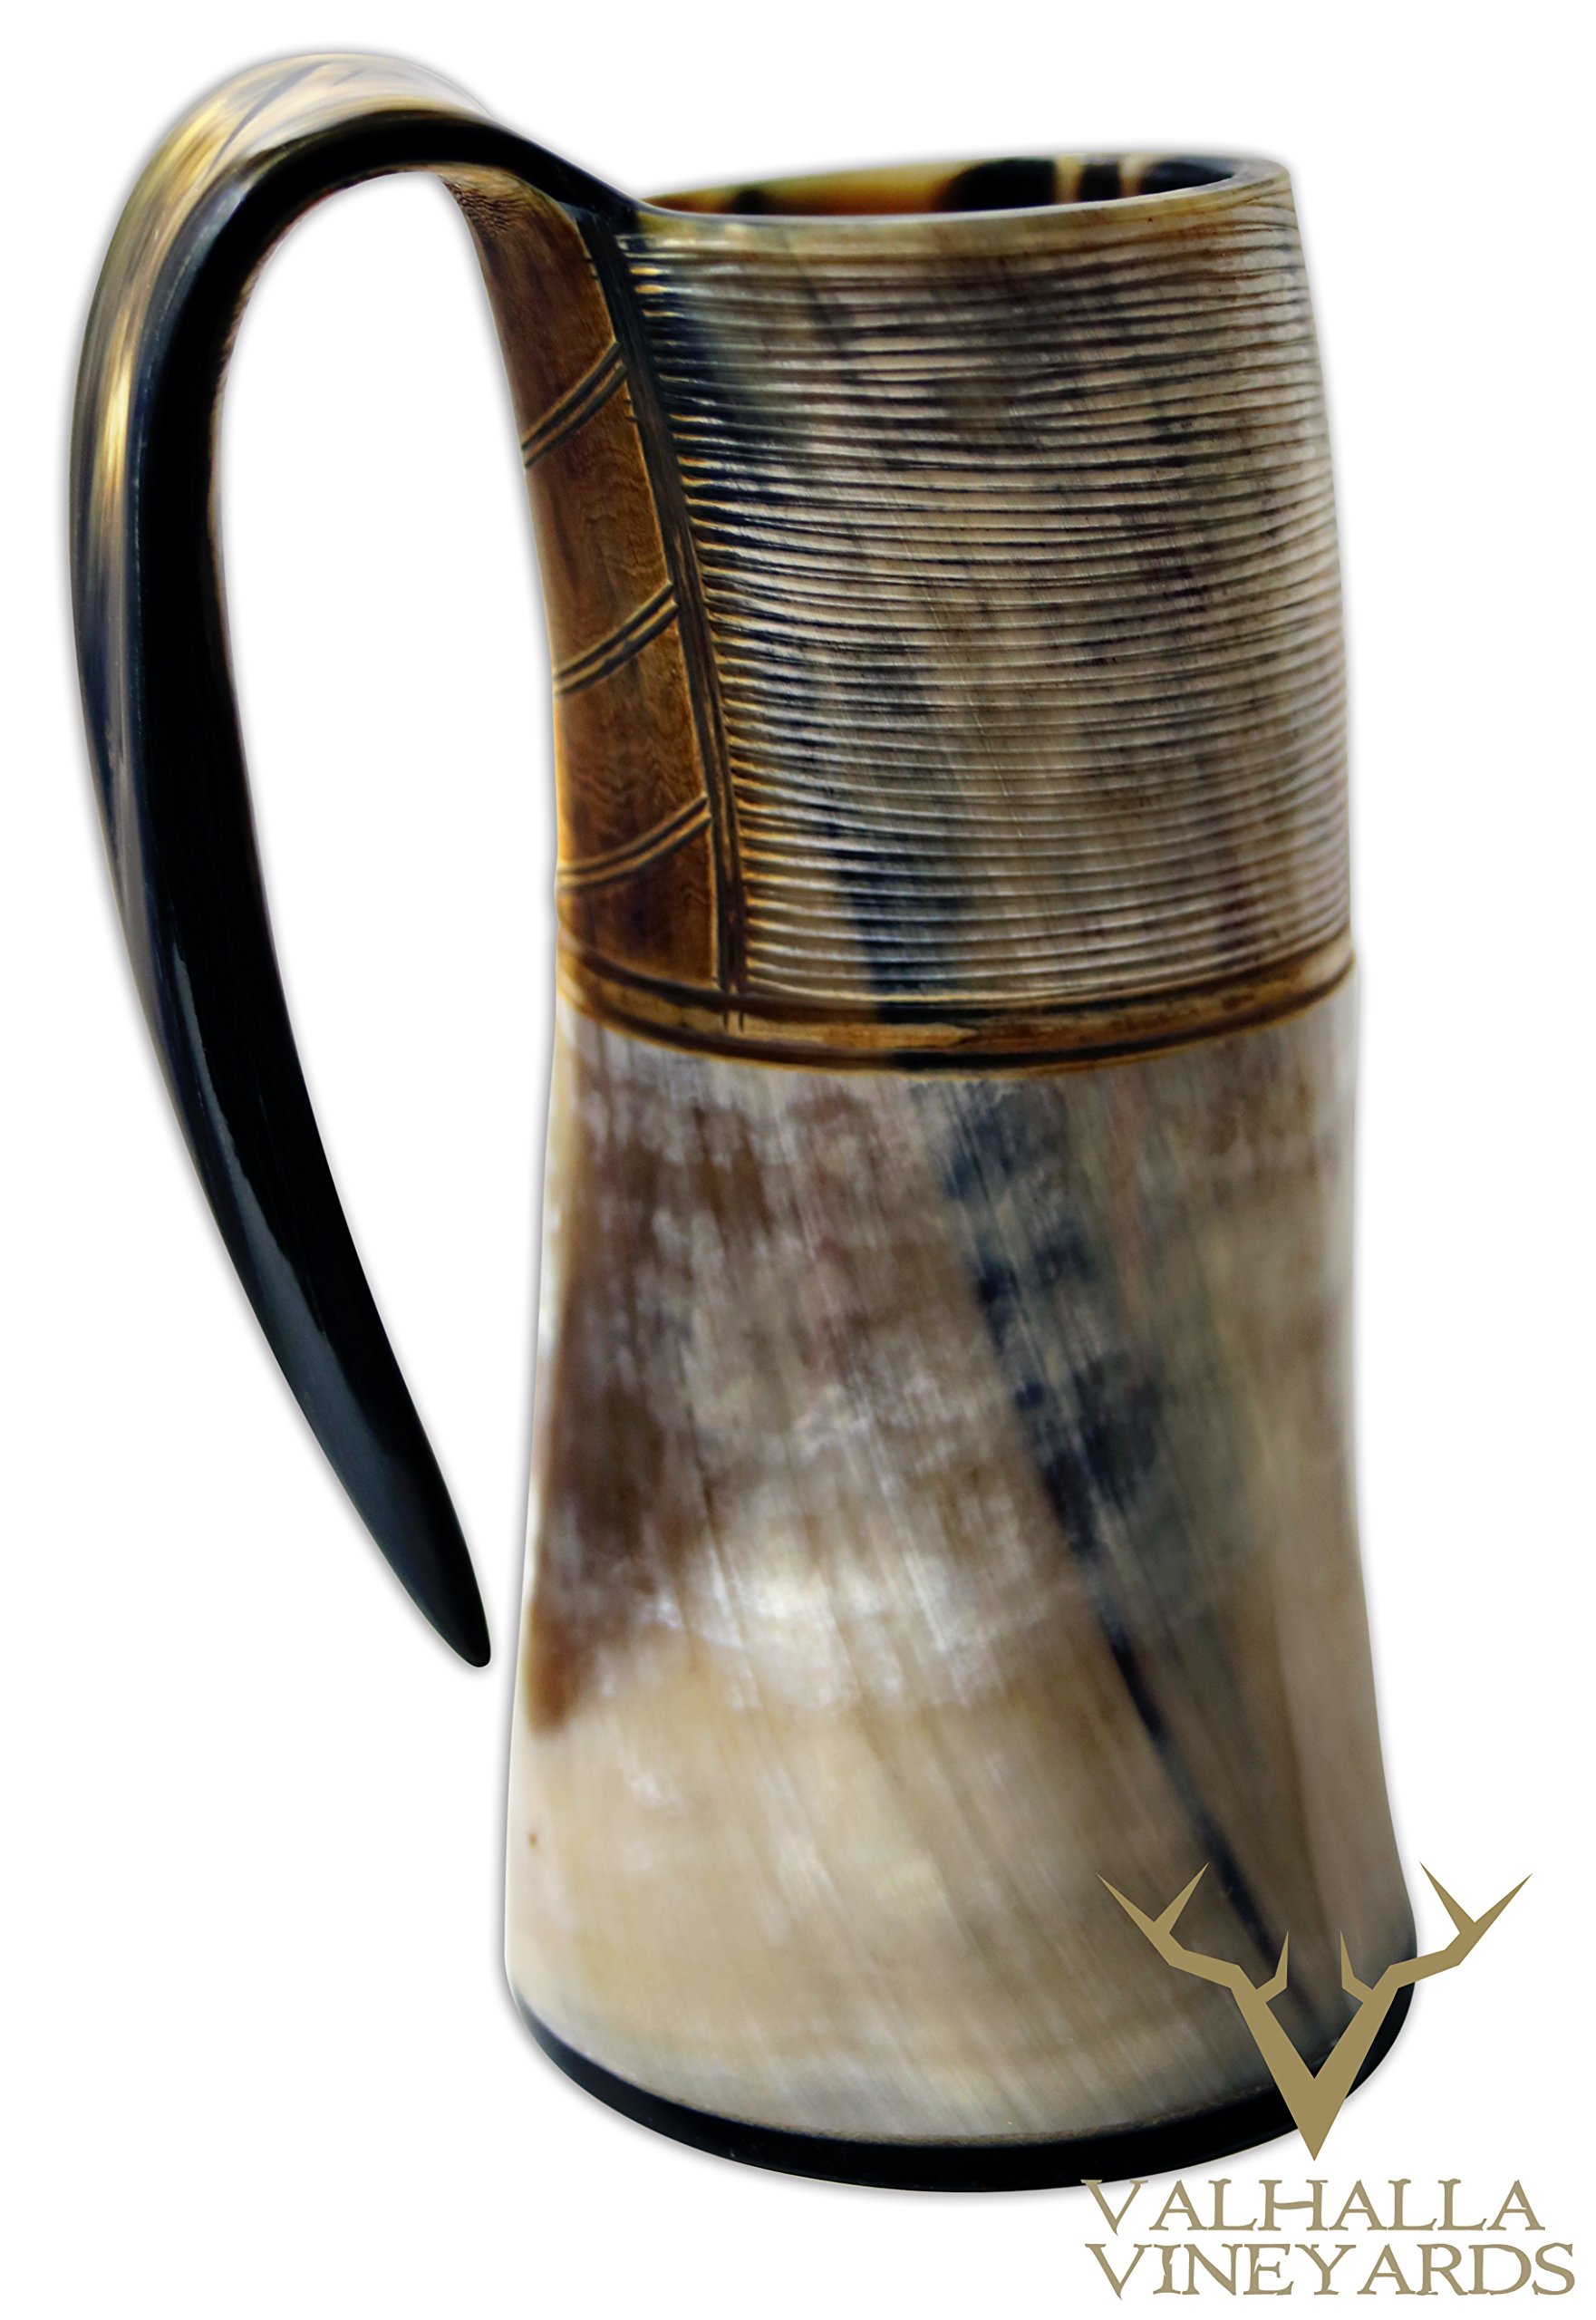 XXL King Size Authentic Natural Style Viking Buffalo Drinking Pitcher / Mug - Authentic Medieval Inspired Mug/Pitcher (42 oz) (Lighter Color) by Valhalla Drinkware (Image #8)